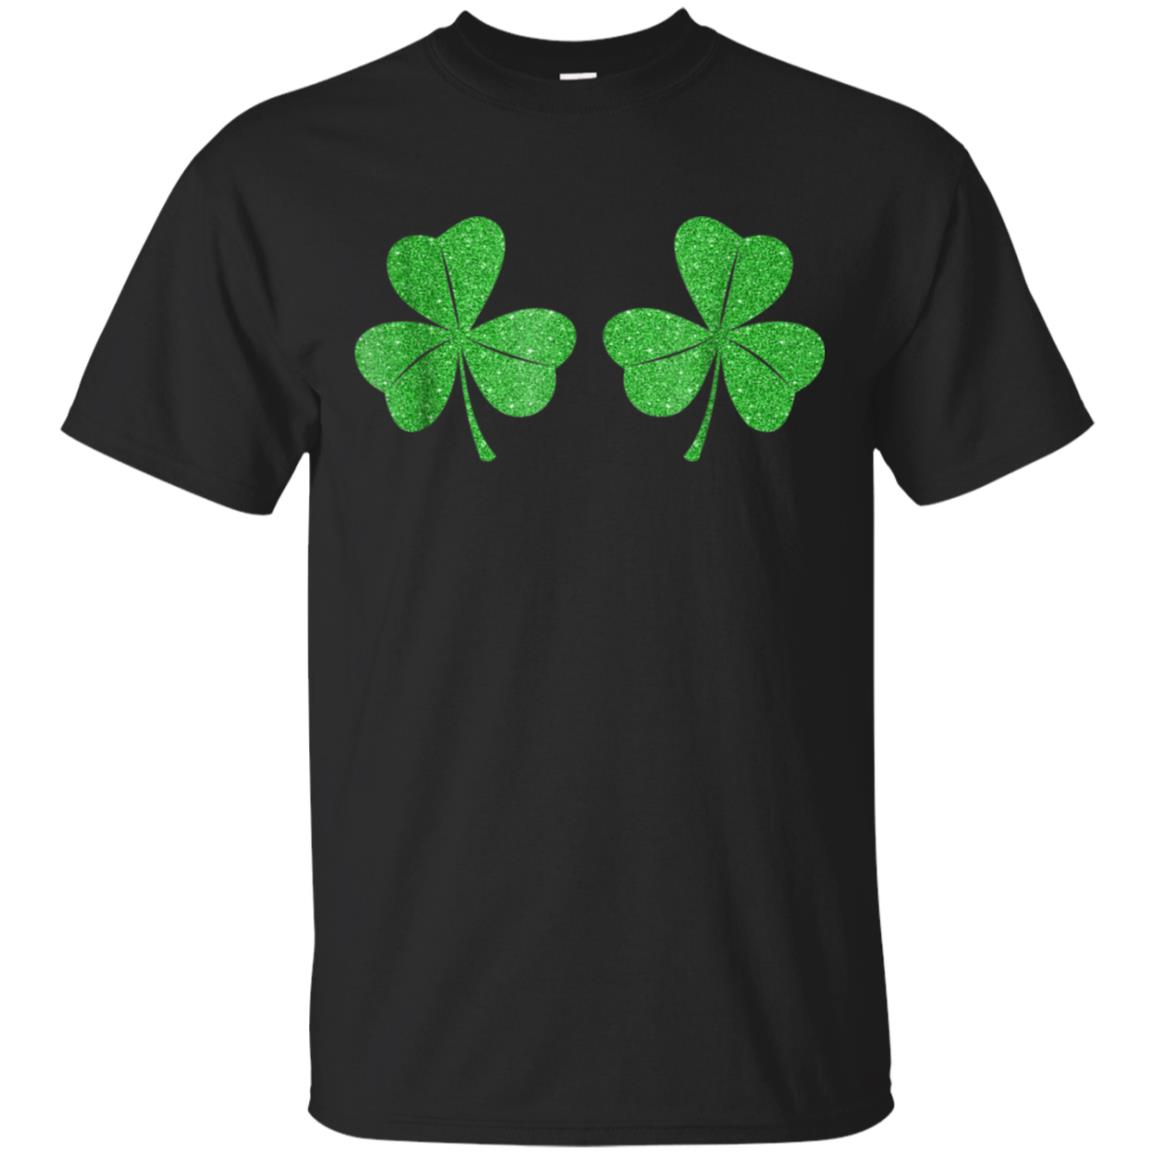 Shamrock Boobs Shirt St Patricks Day Green Glitter Bra Tee 99promocode